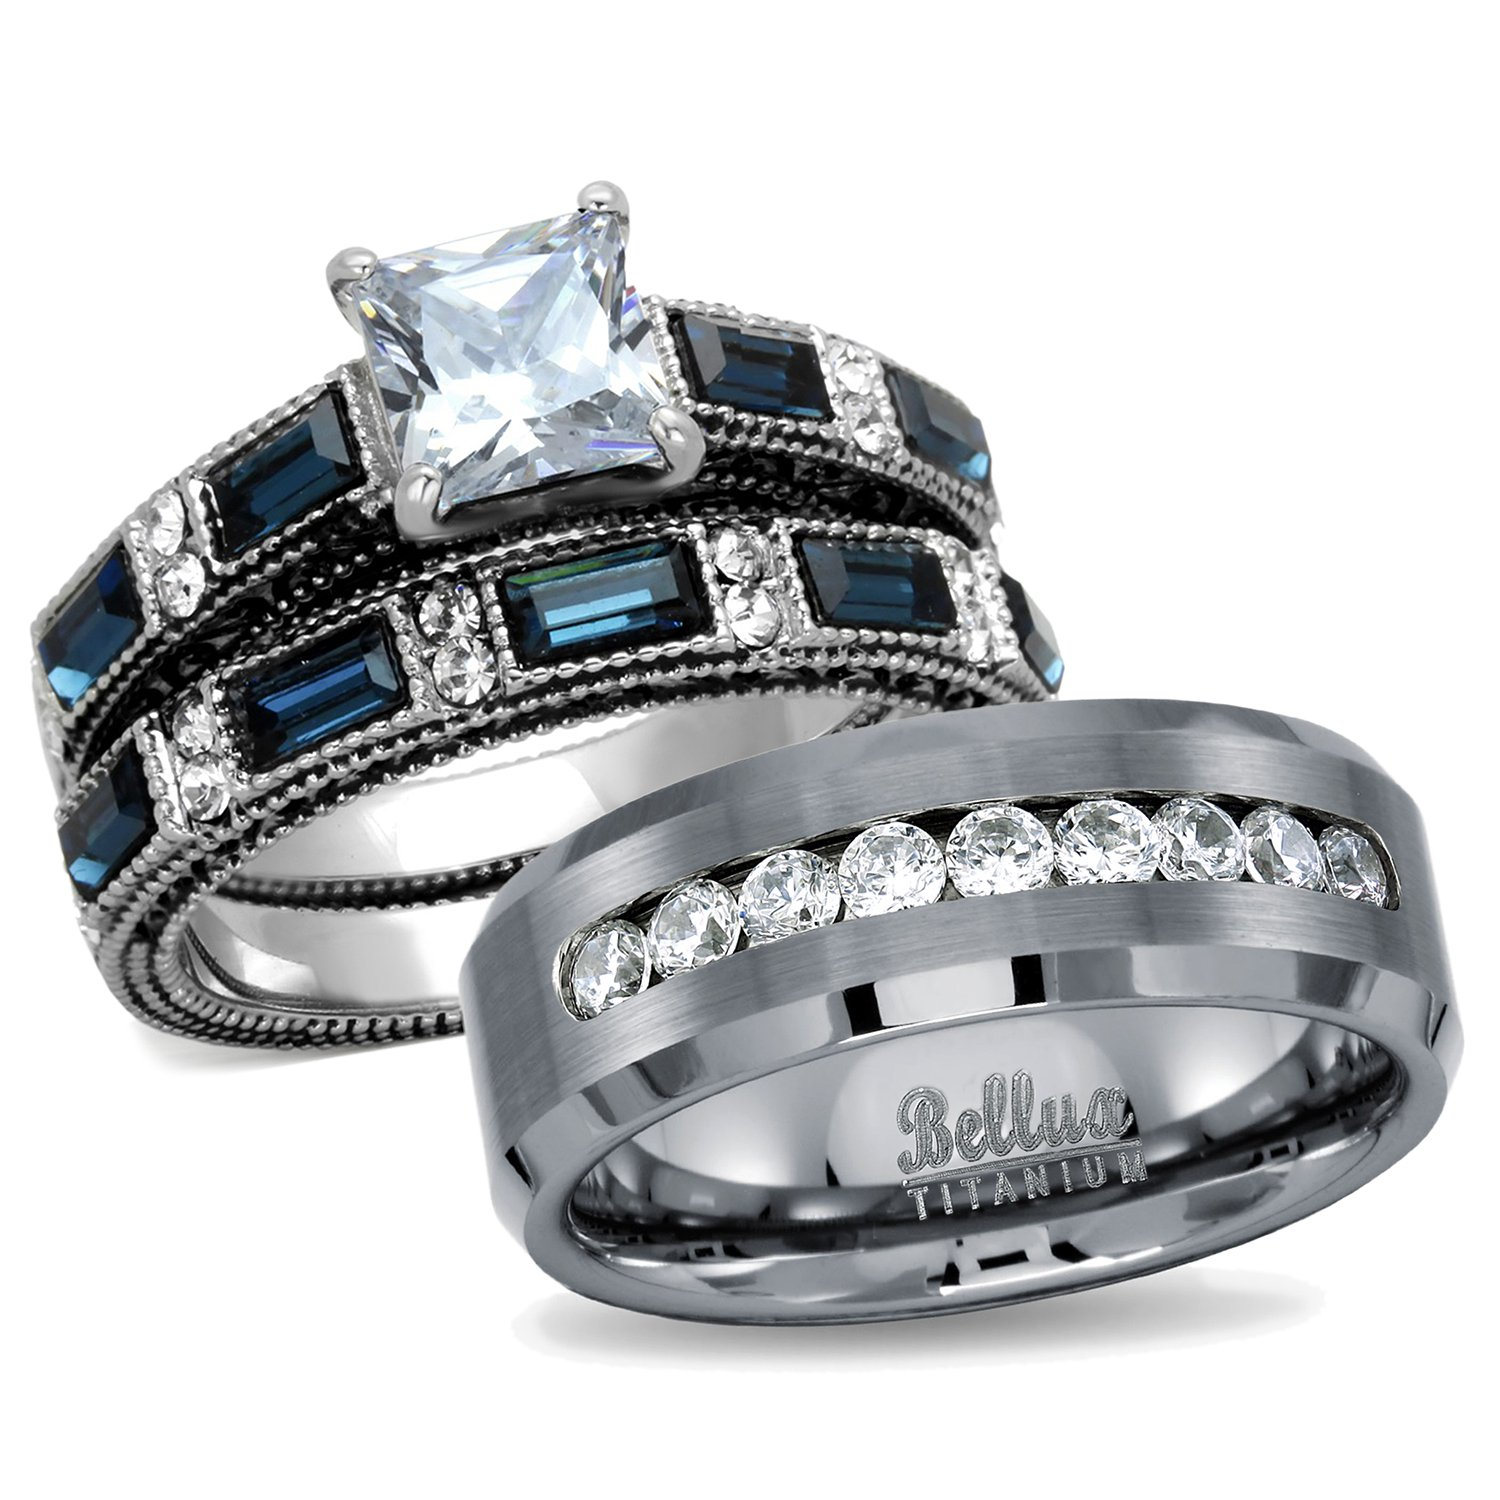 Buy His & Hers Wedding Ring Sets Women